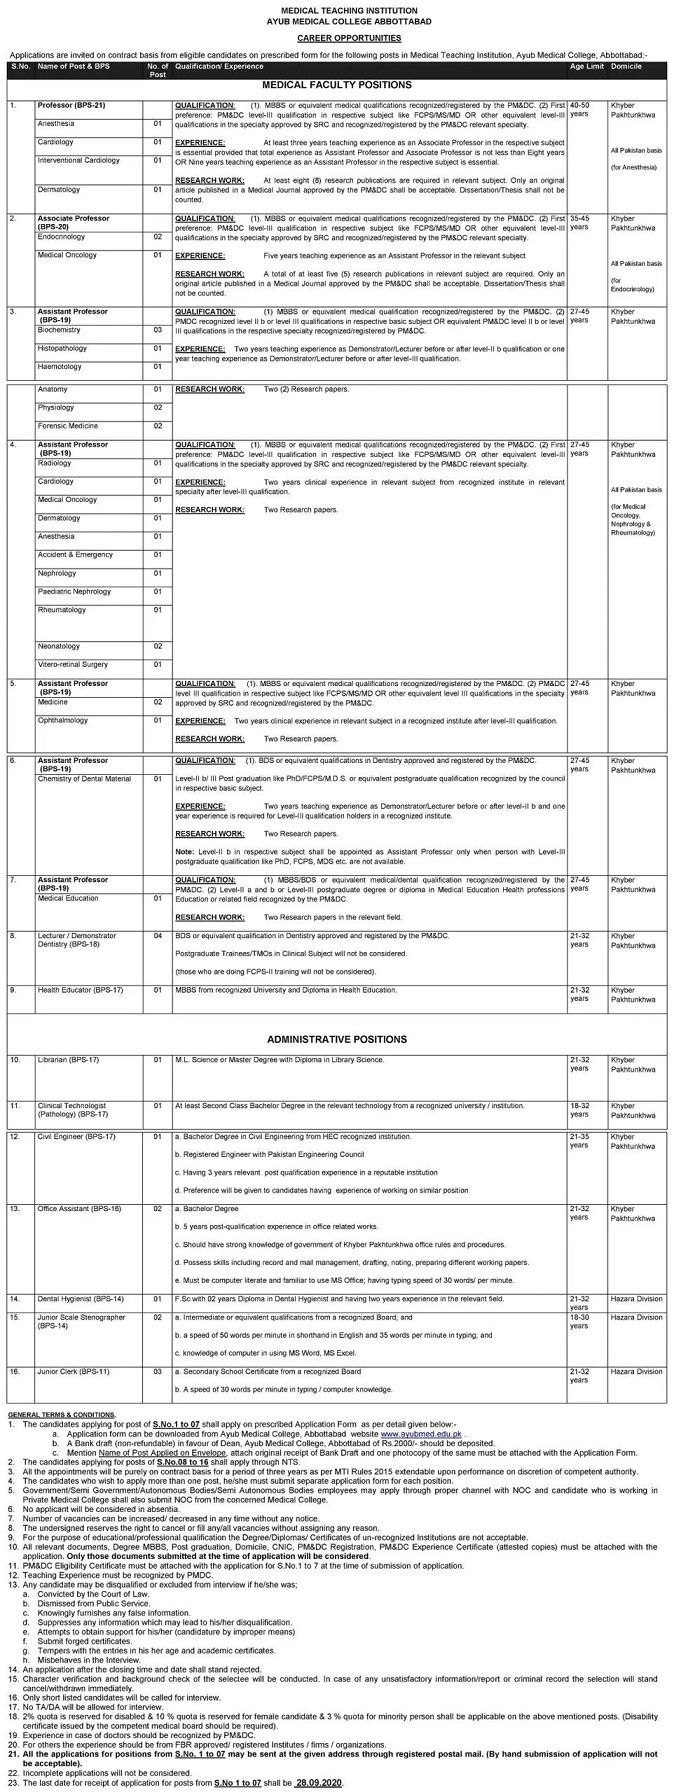 Medical Teaching Institution Medical Administrative Posts NTS Roll No Slip Ayub Medical College Abbottabad